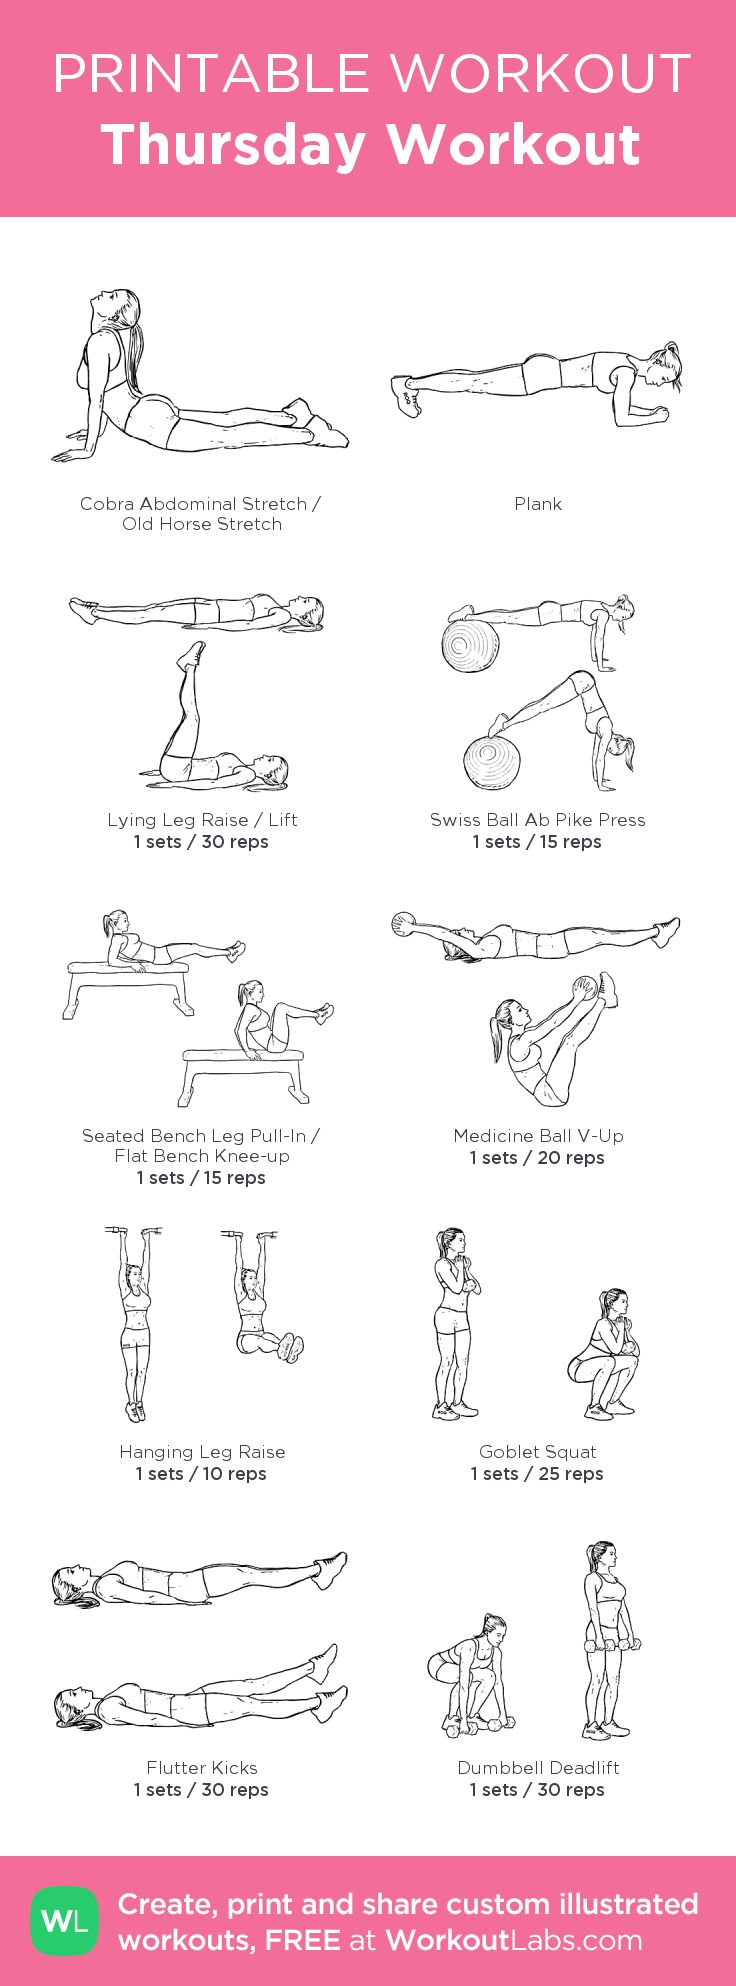 Thursday Workout – with transverse abdominal work as well as pilates/yoga